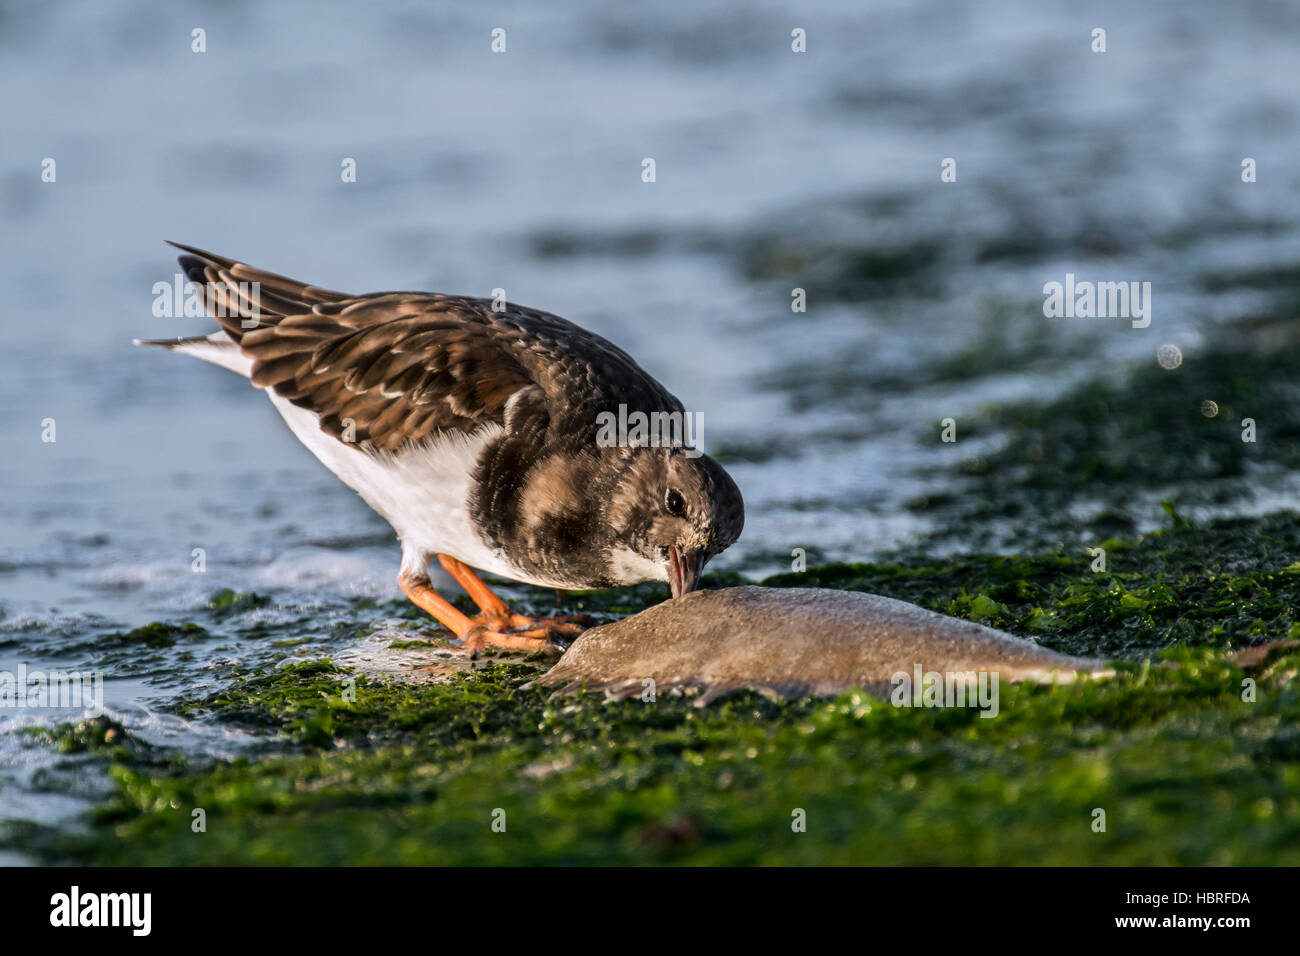 Ruddy turnstone (Arenaria interpres) in non-breeding winter plumage eating from dead fish on breakwater on beach - Stock Image